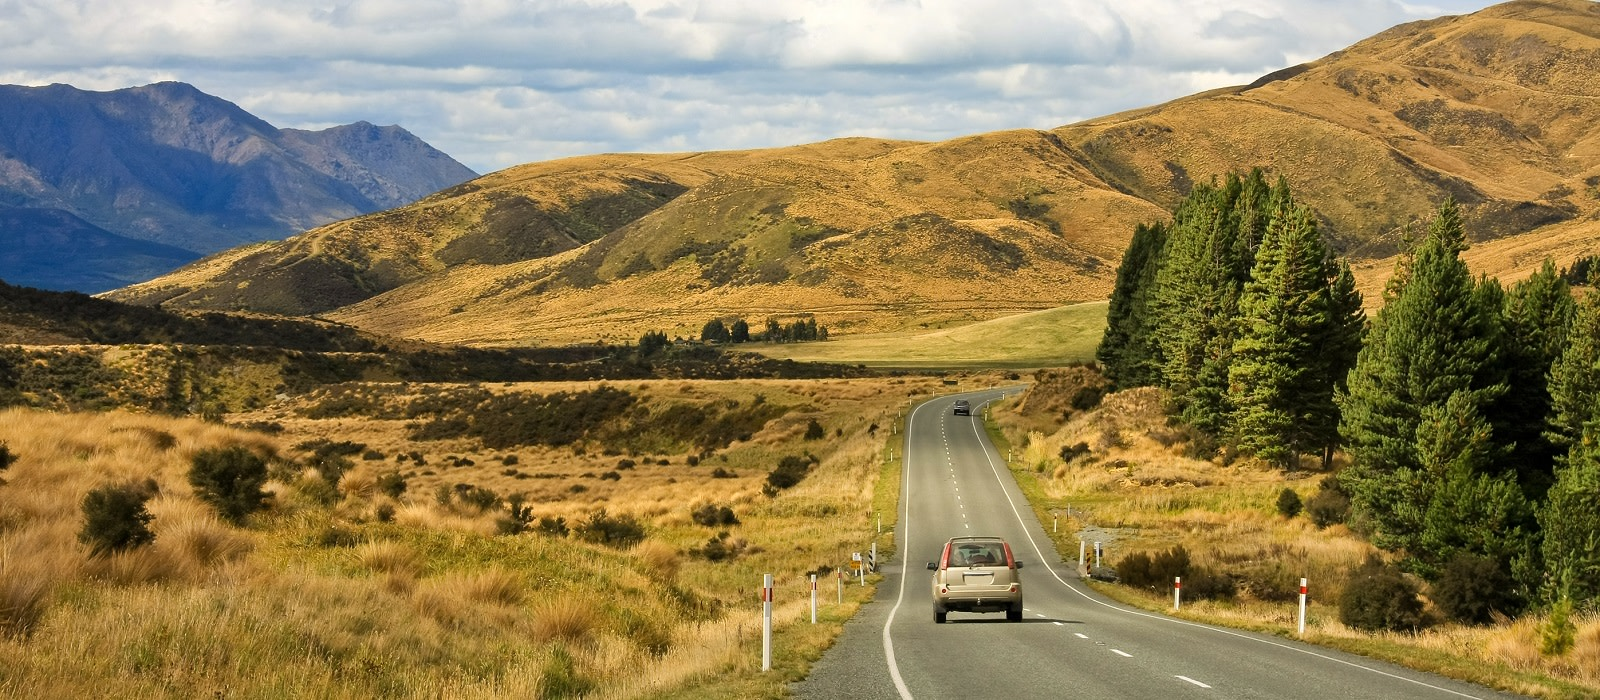 New Zealand Overland: From South to North Island Tour Trip 1